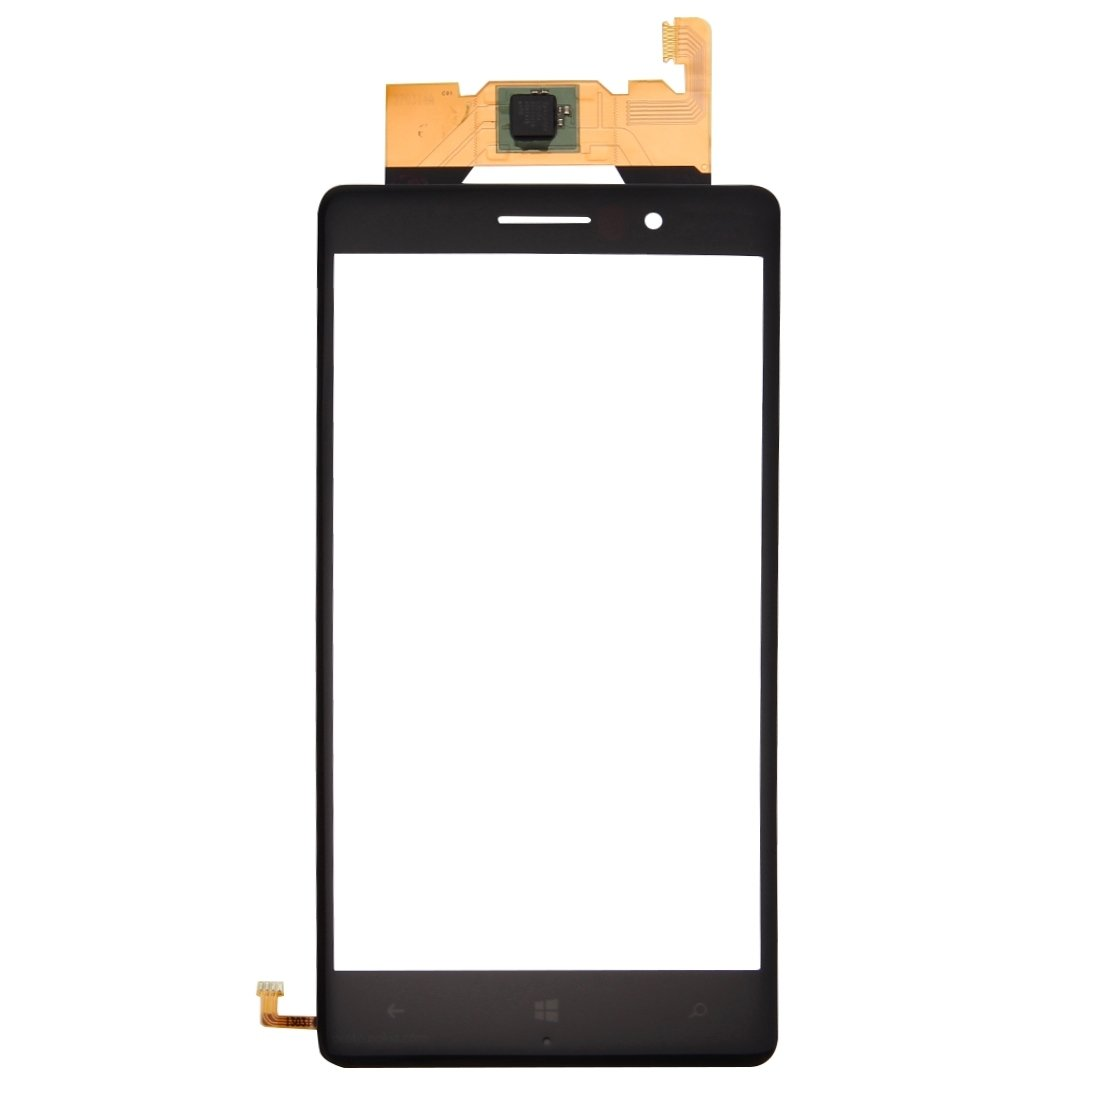 JUNXI Phone Touch Panel for Nokia Lumia 830 (Black) Full Coverage and HD Clear (Color : Black) by JUNXI